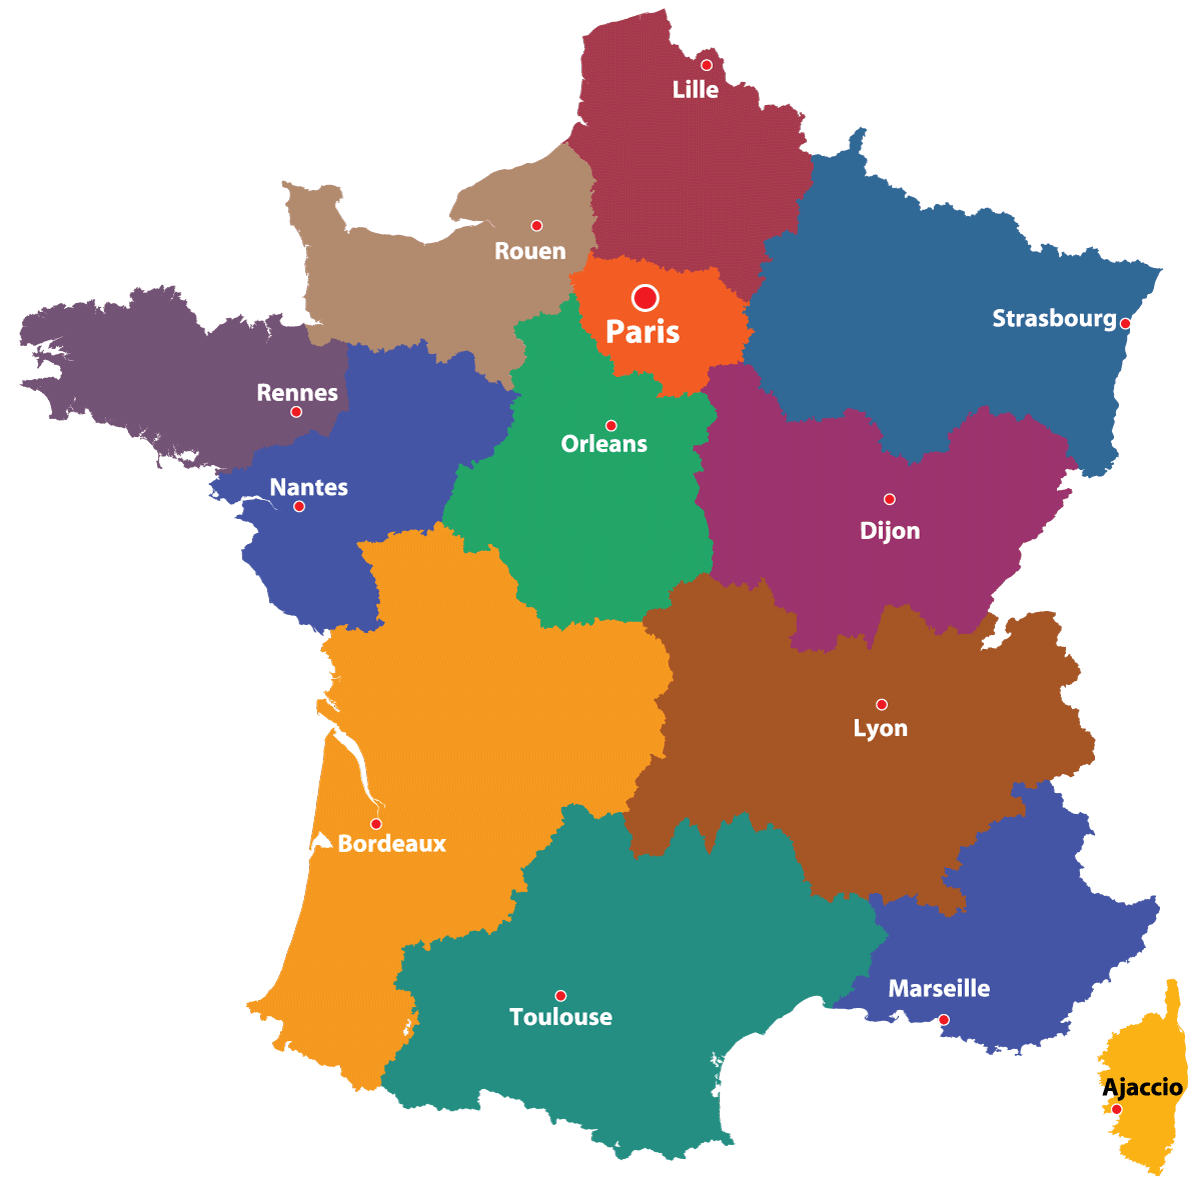 Outline Political Map Of France.Maps Of The Regions Of France